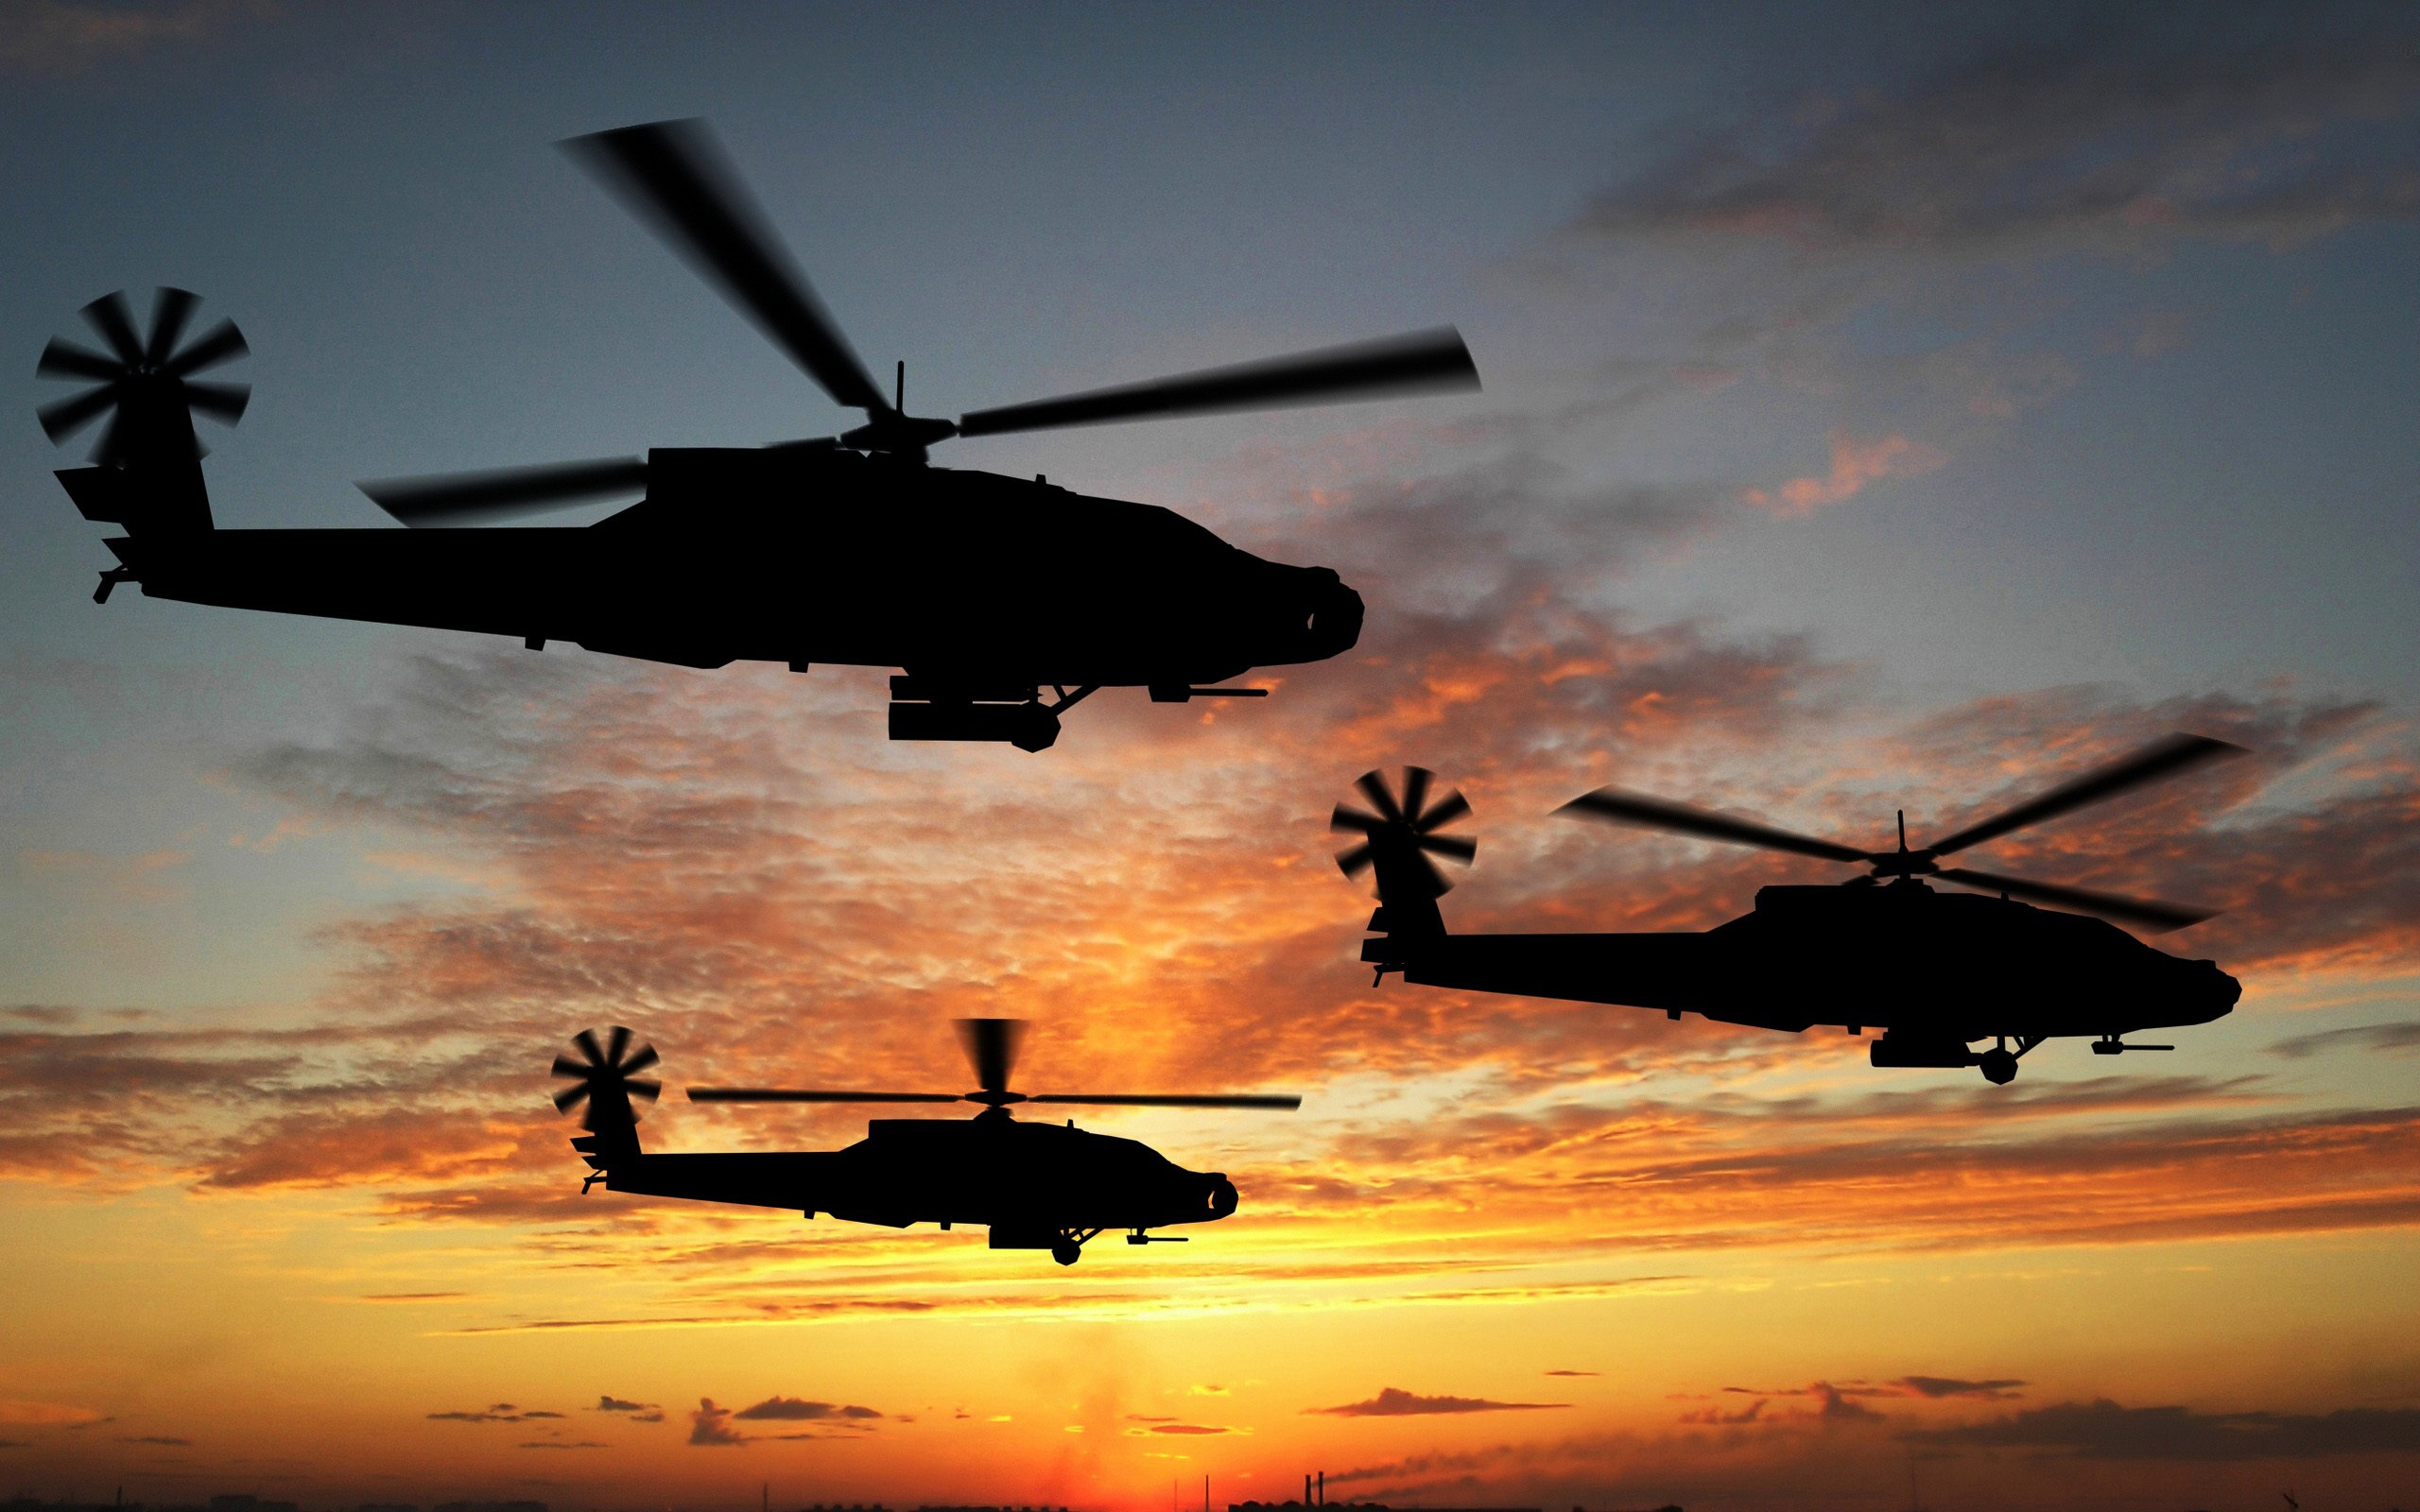 Boeing Apache Attack Helicopters Wallpapers HD Wallpapers 2560x1600